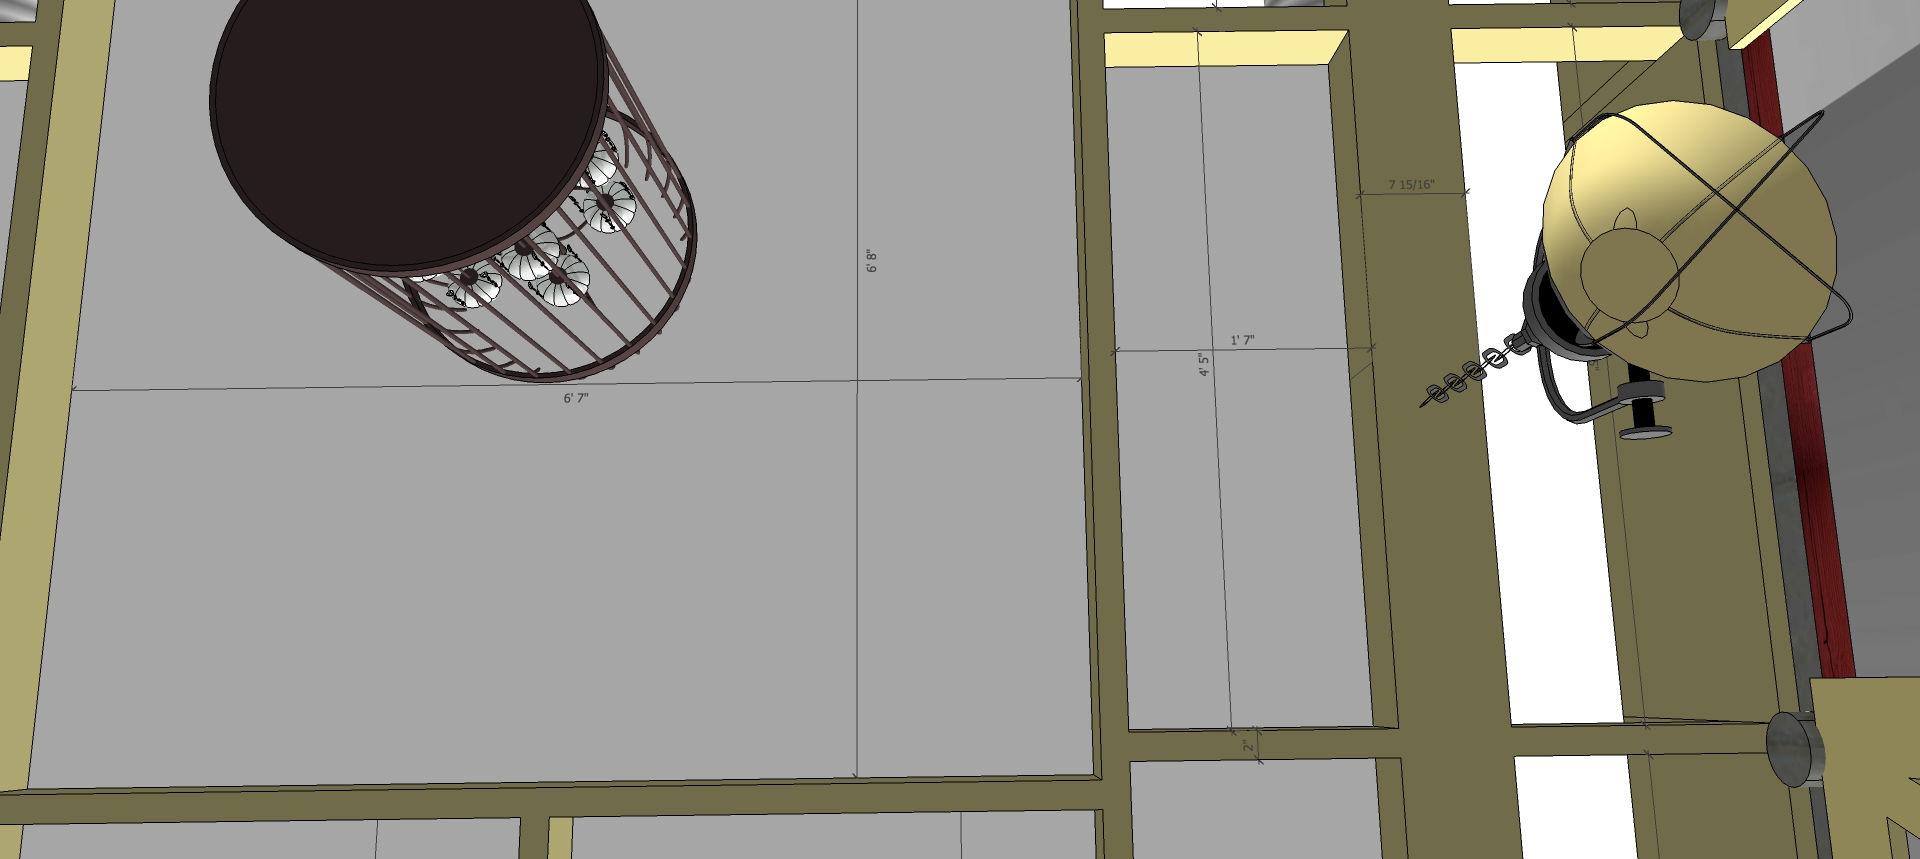 Ceiling Grid above Banquette.jpg